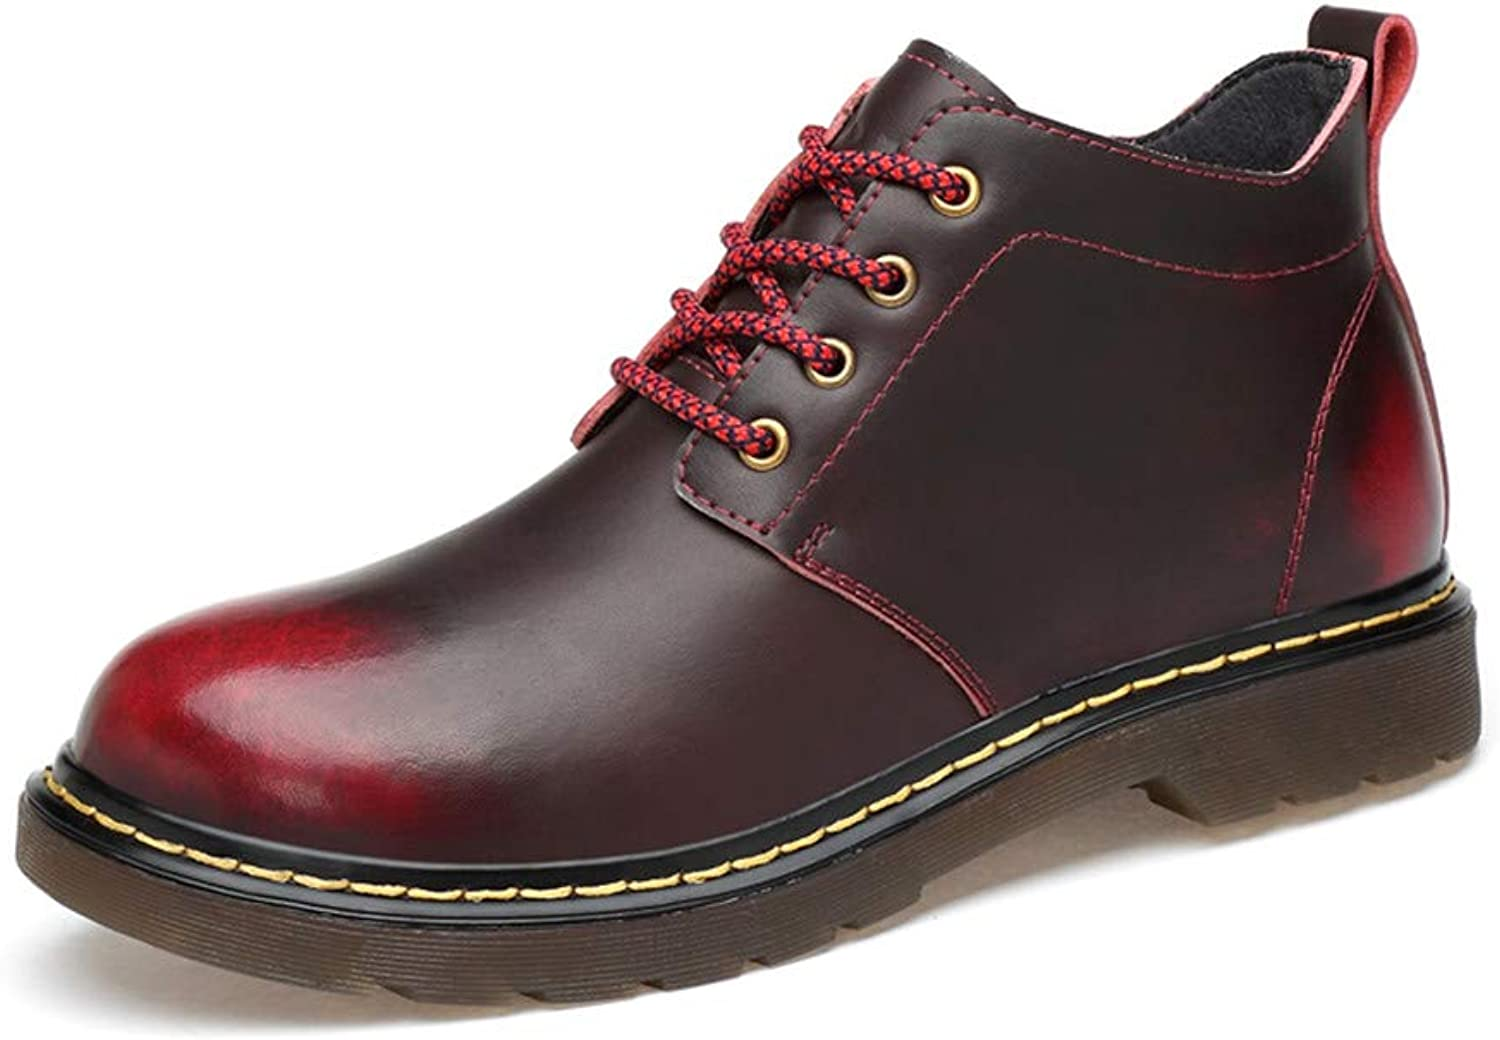 Sunny&Baby Men's and Women's Fashionable Ankle Boots Casual and Retro High Top Painted Outsole Work shoes (Warm Velvet Optional) Durable (color   Warm Wine Red, Size   5.5 D(M) US)